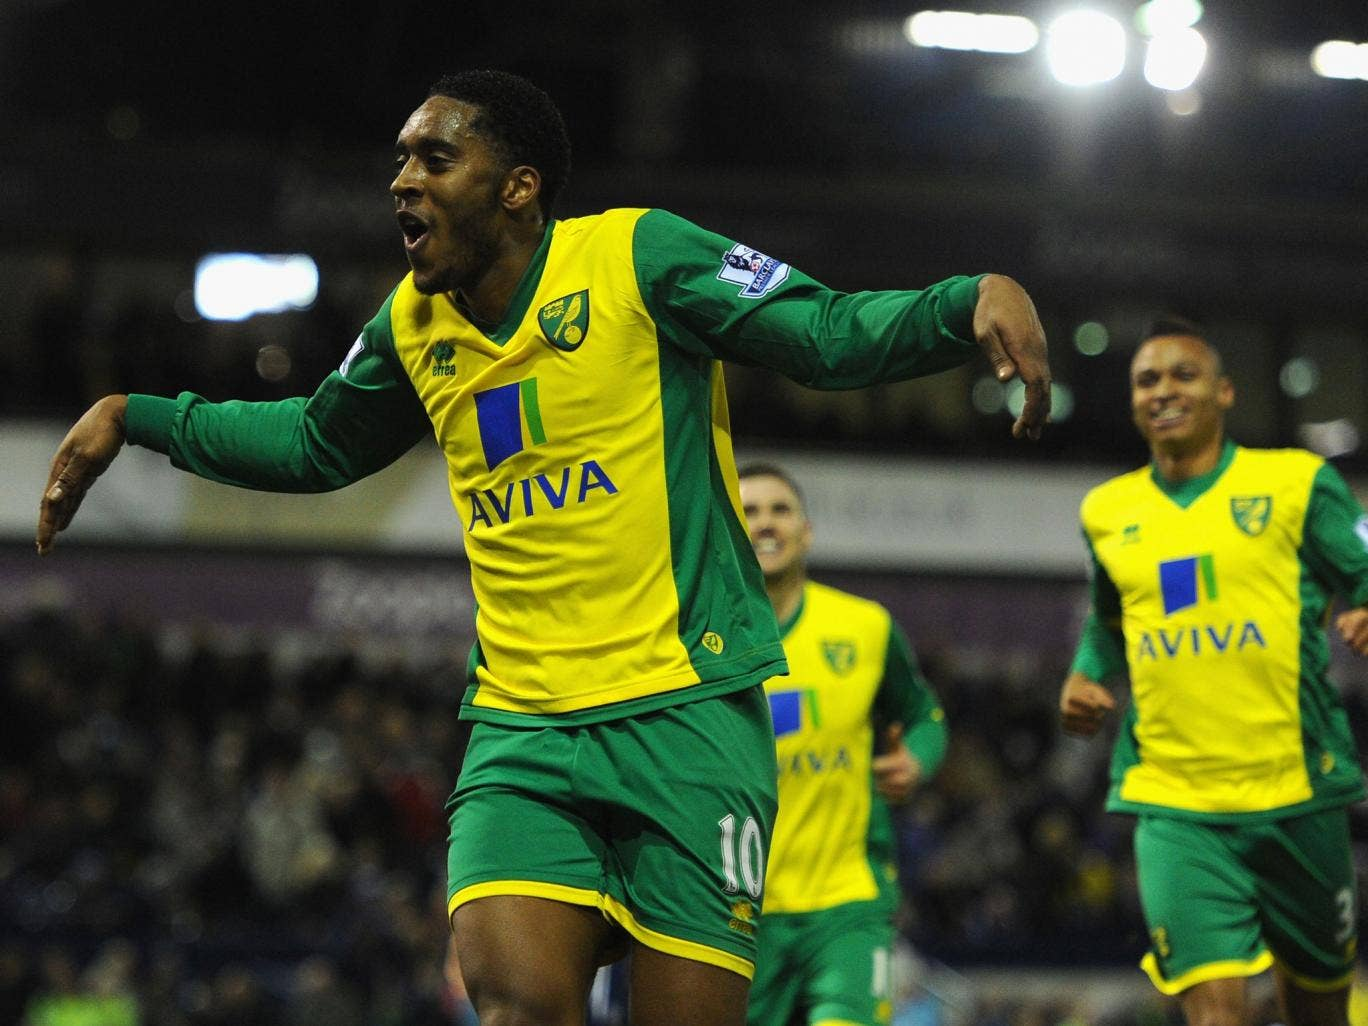 Norwich player Leroy Fer celebrates after scoring the second goal